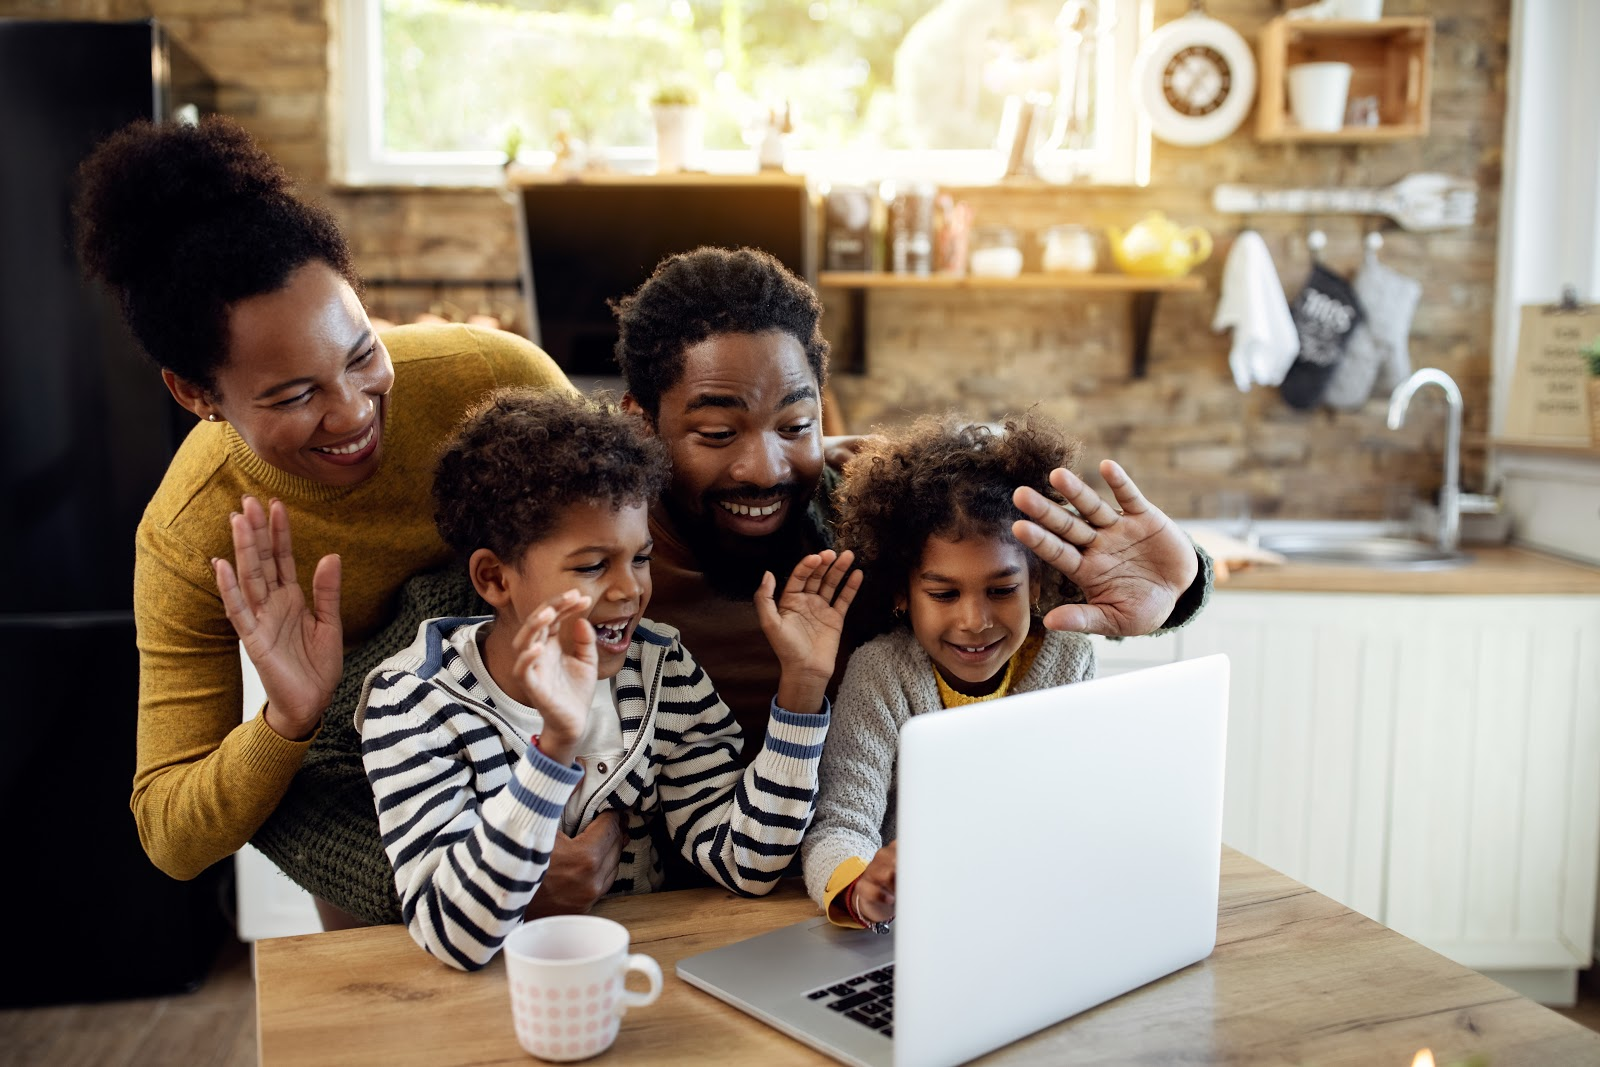 Virtual family games: Happy family and waving during a video call